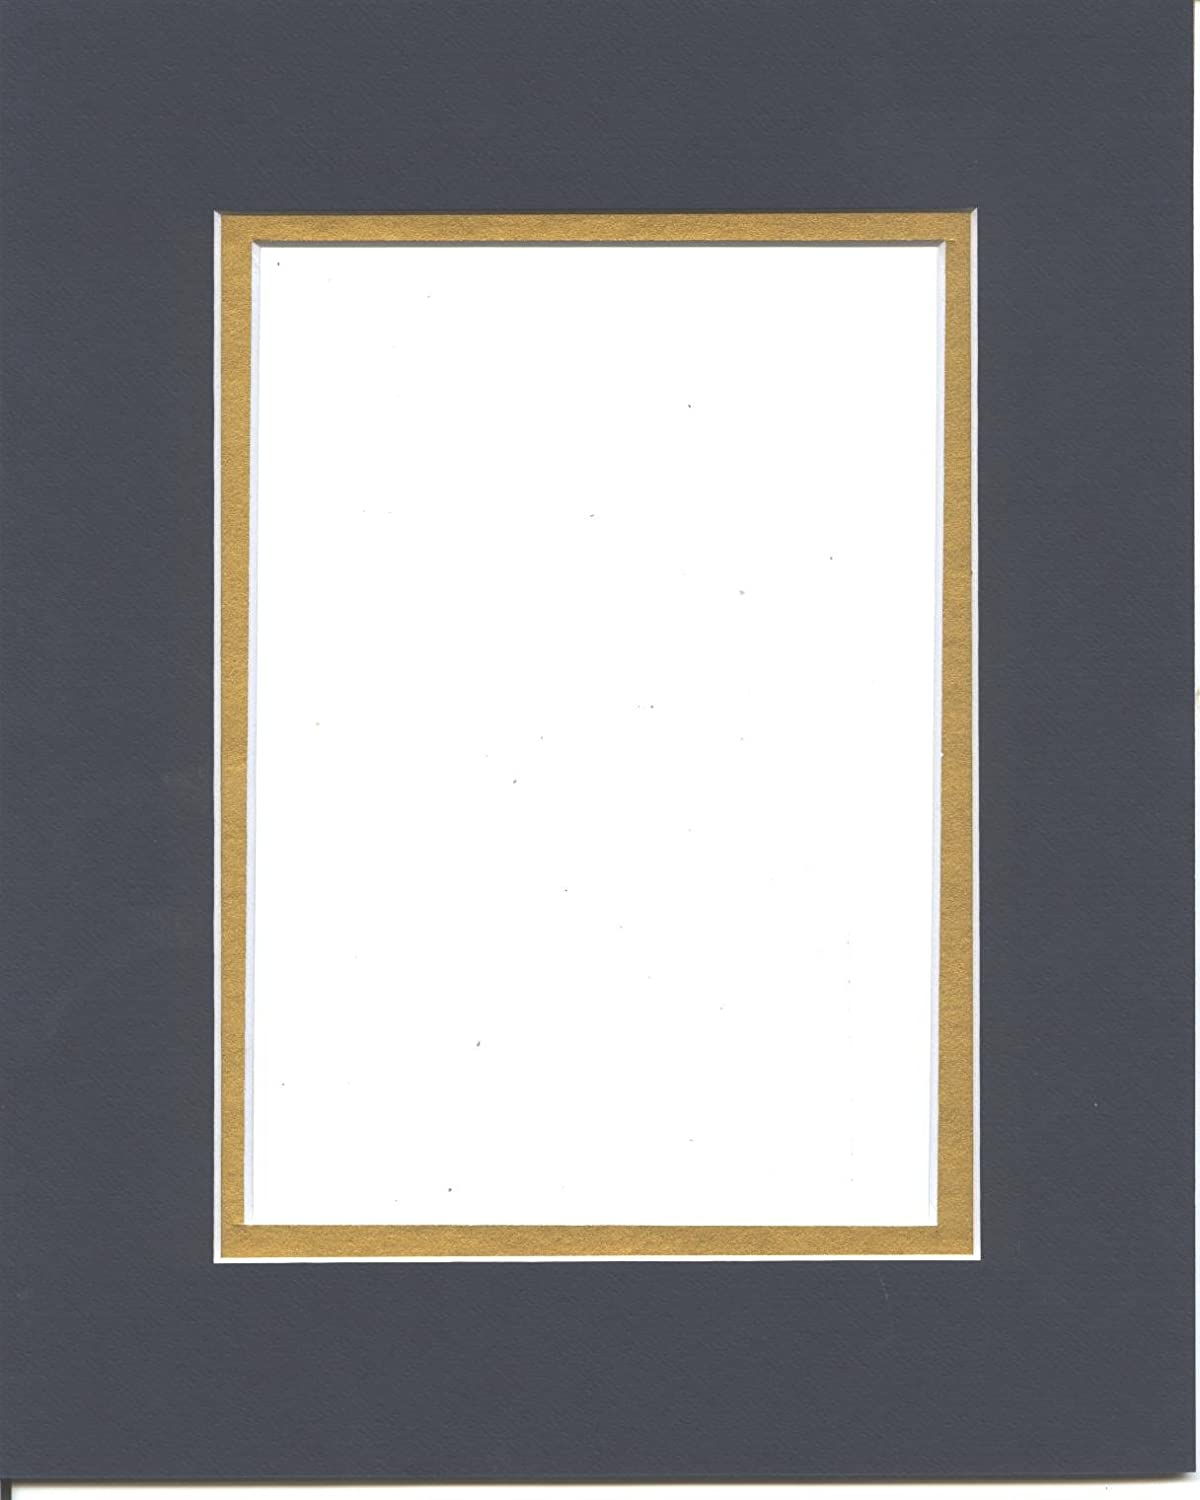 18x24 Navy Blue /& Gold Double Picture Mats Bevel Cut for 12x18 Pictures